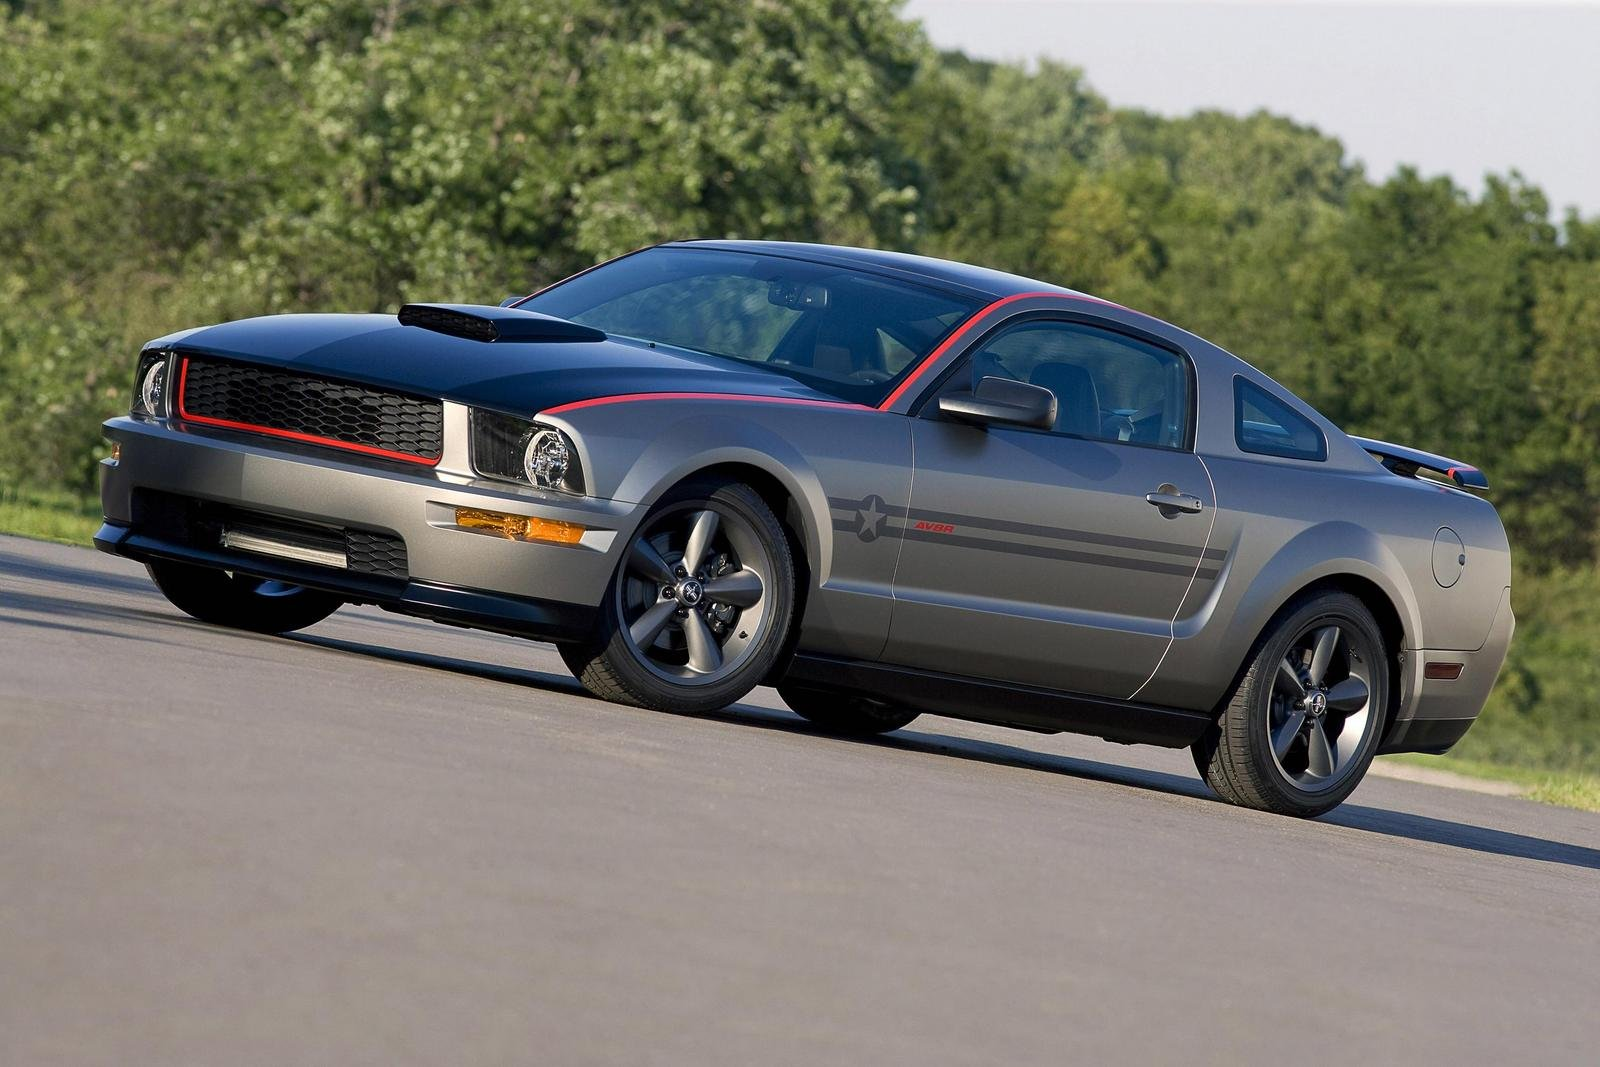 Ford Mustang 2008 Top Speed